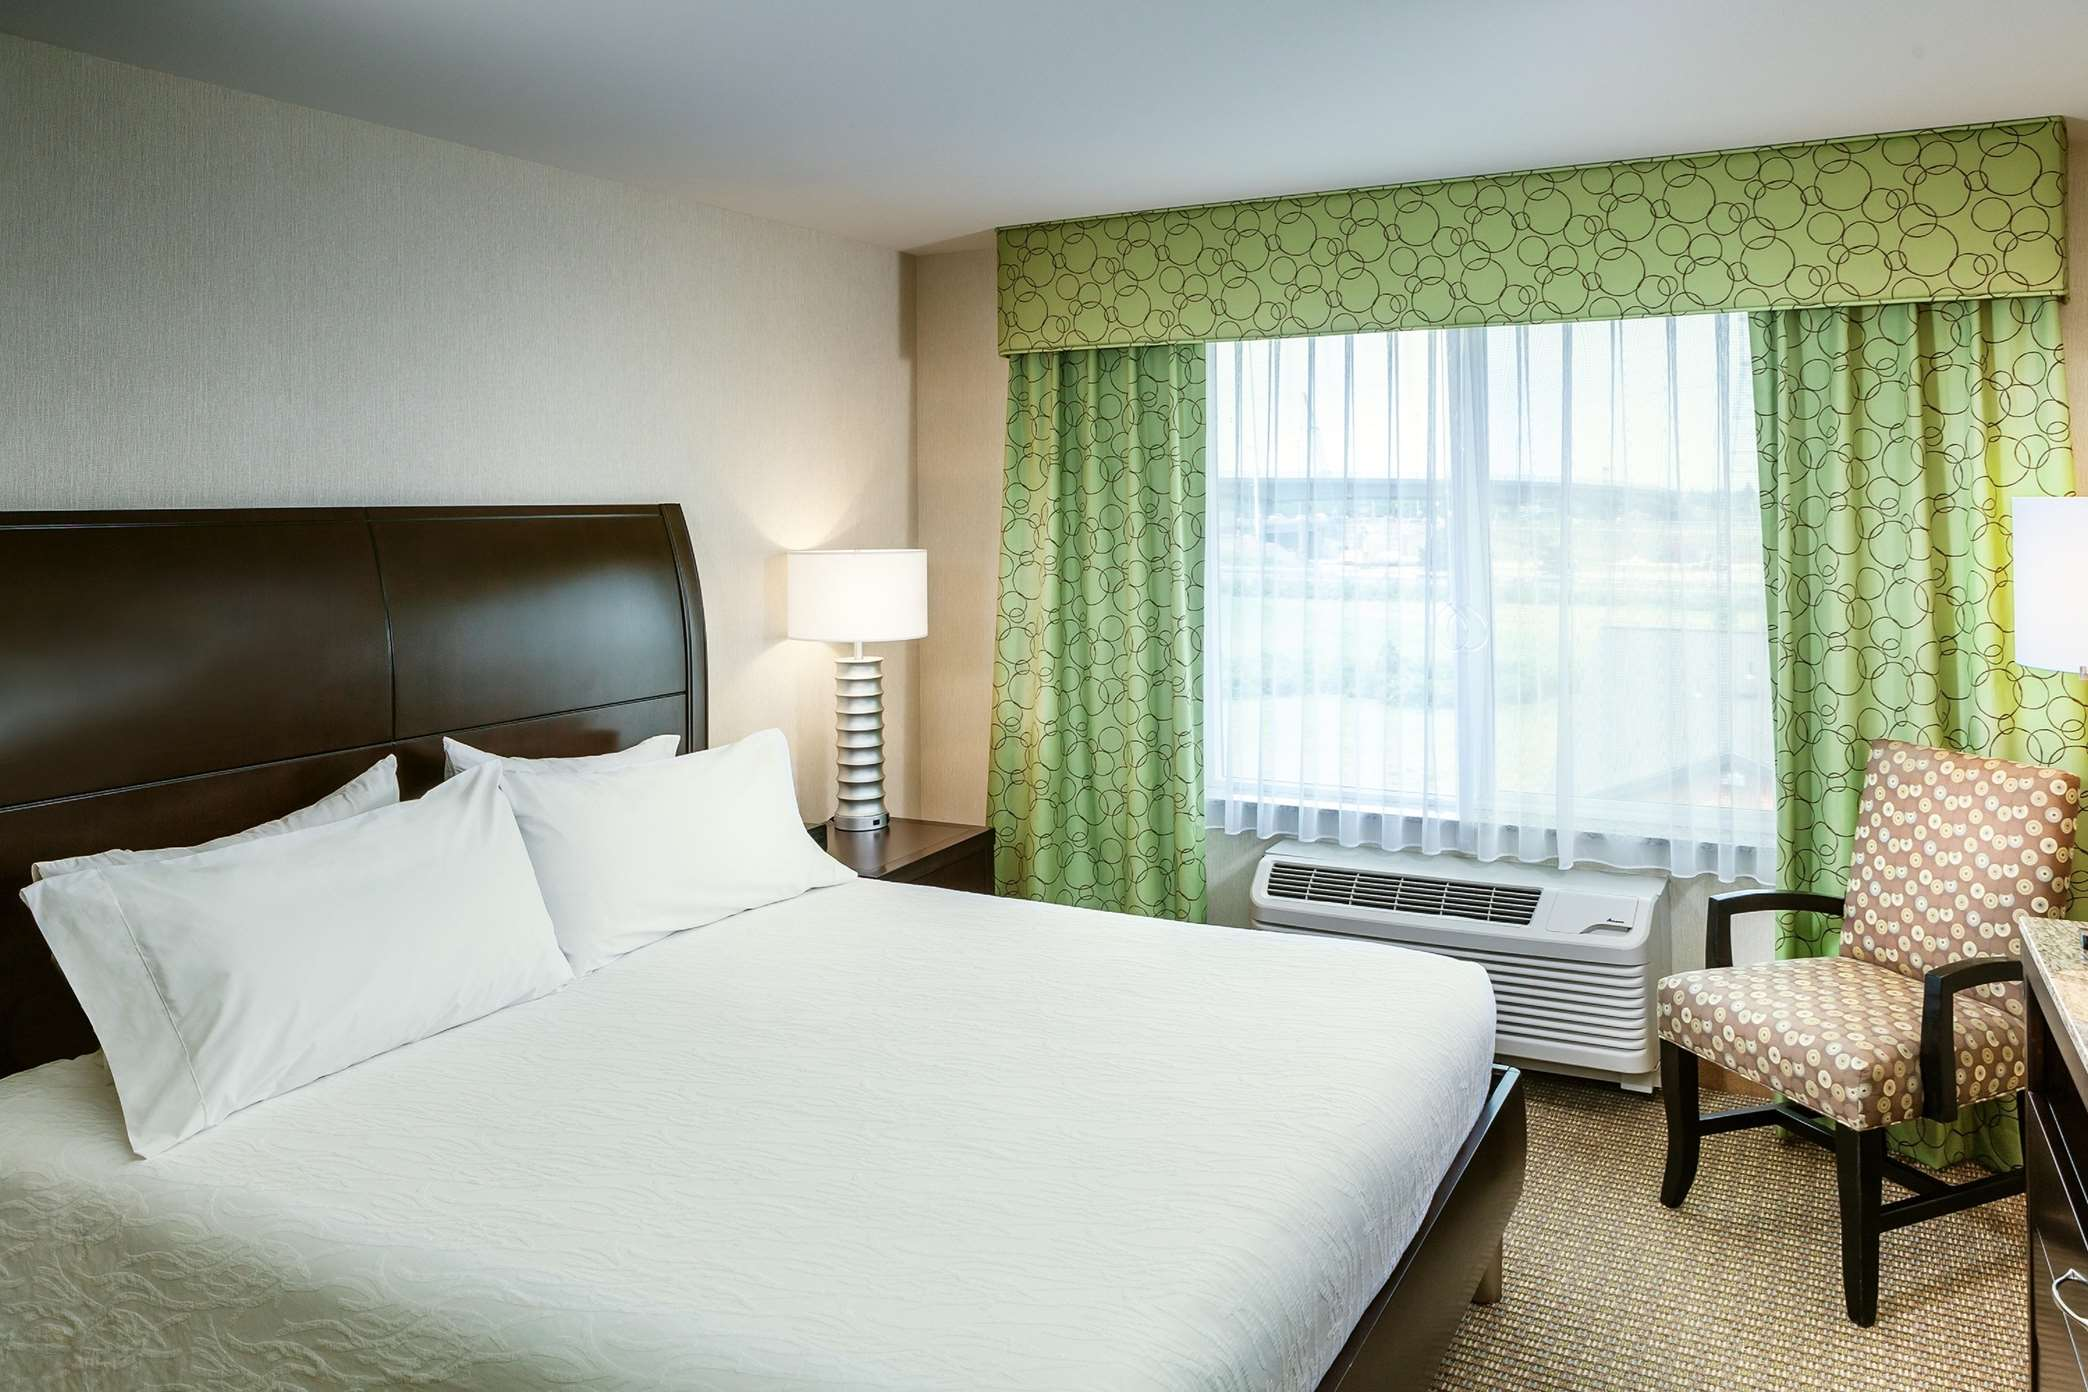 Hilton Garden Inn Seattle Bothell Wa Coupons Near Me In Bothell 8coupons